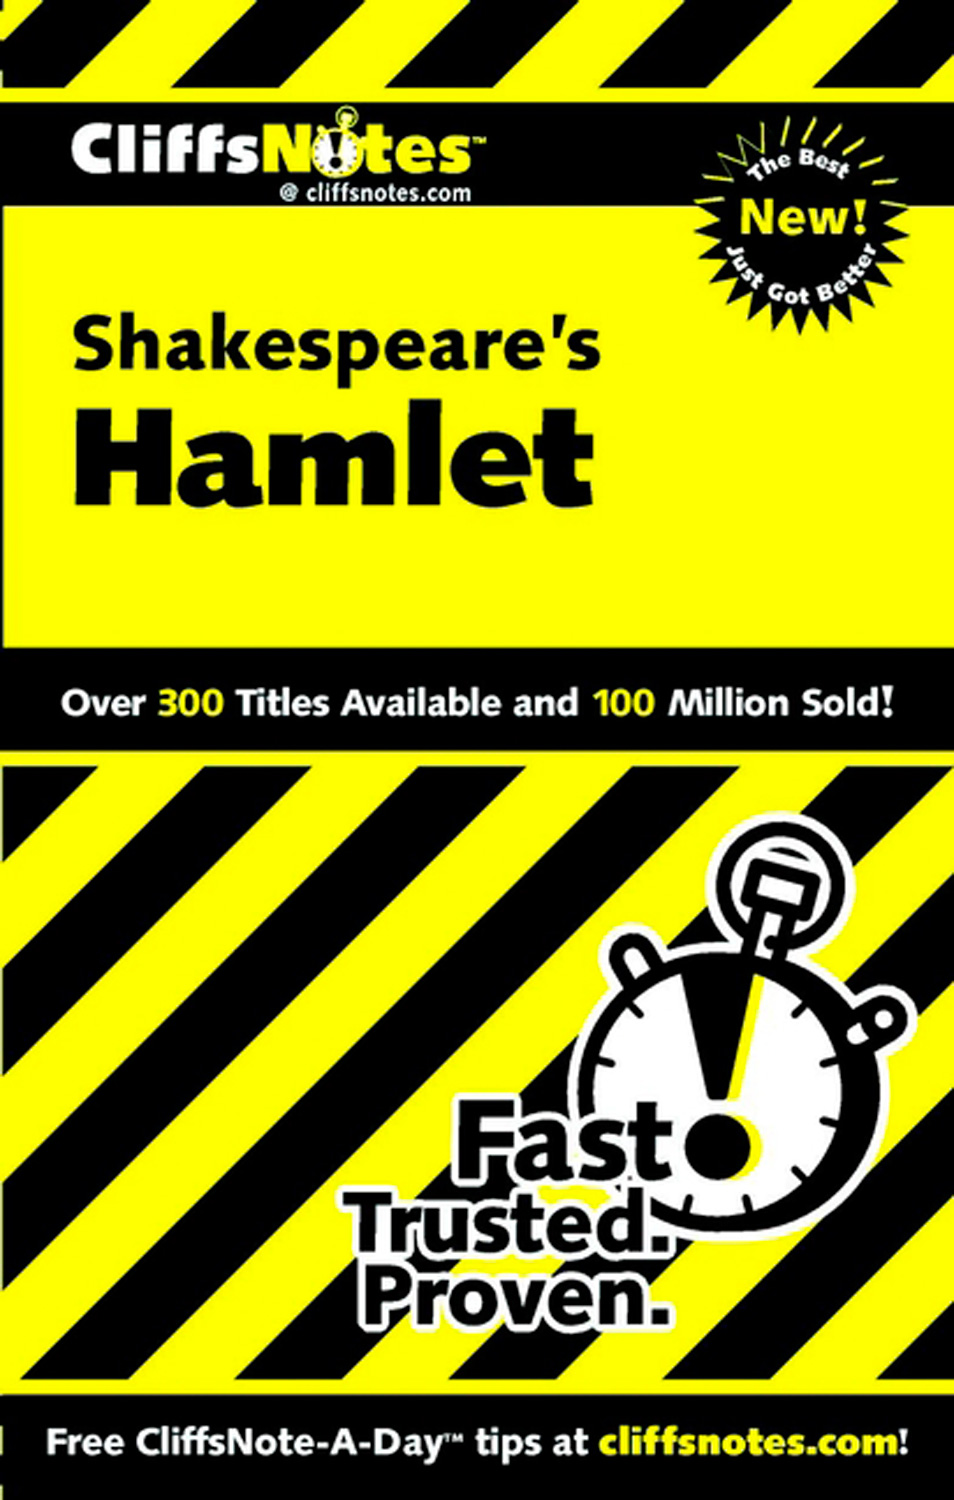 CliffsNotes on Shakespeare's Hamlet-9780764586033